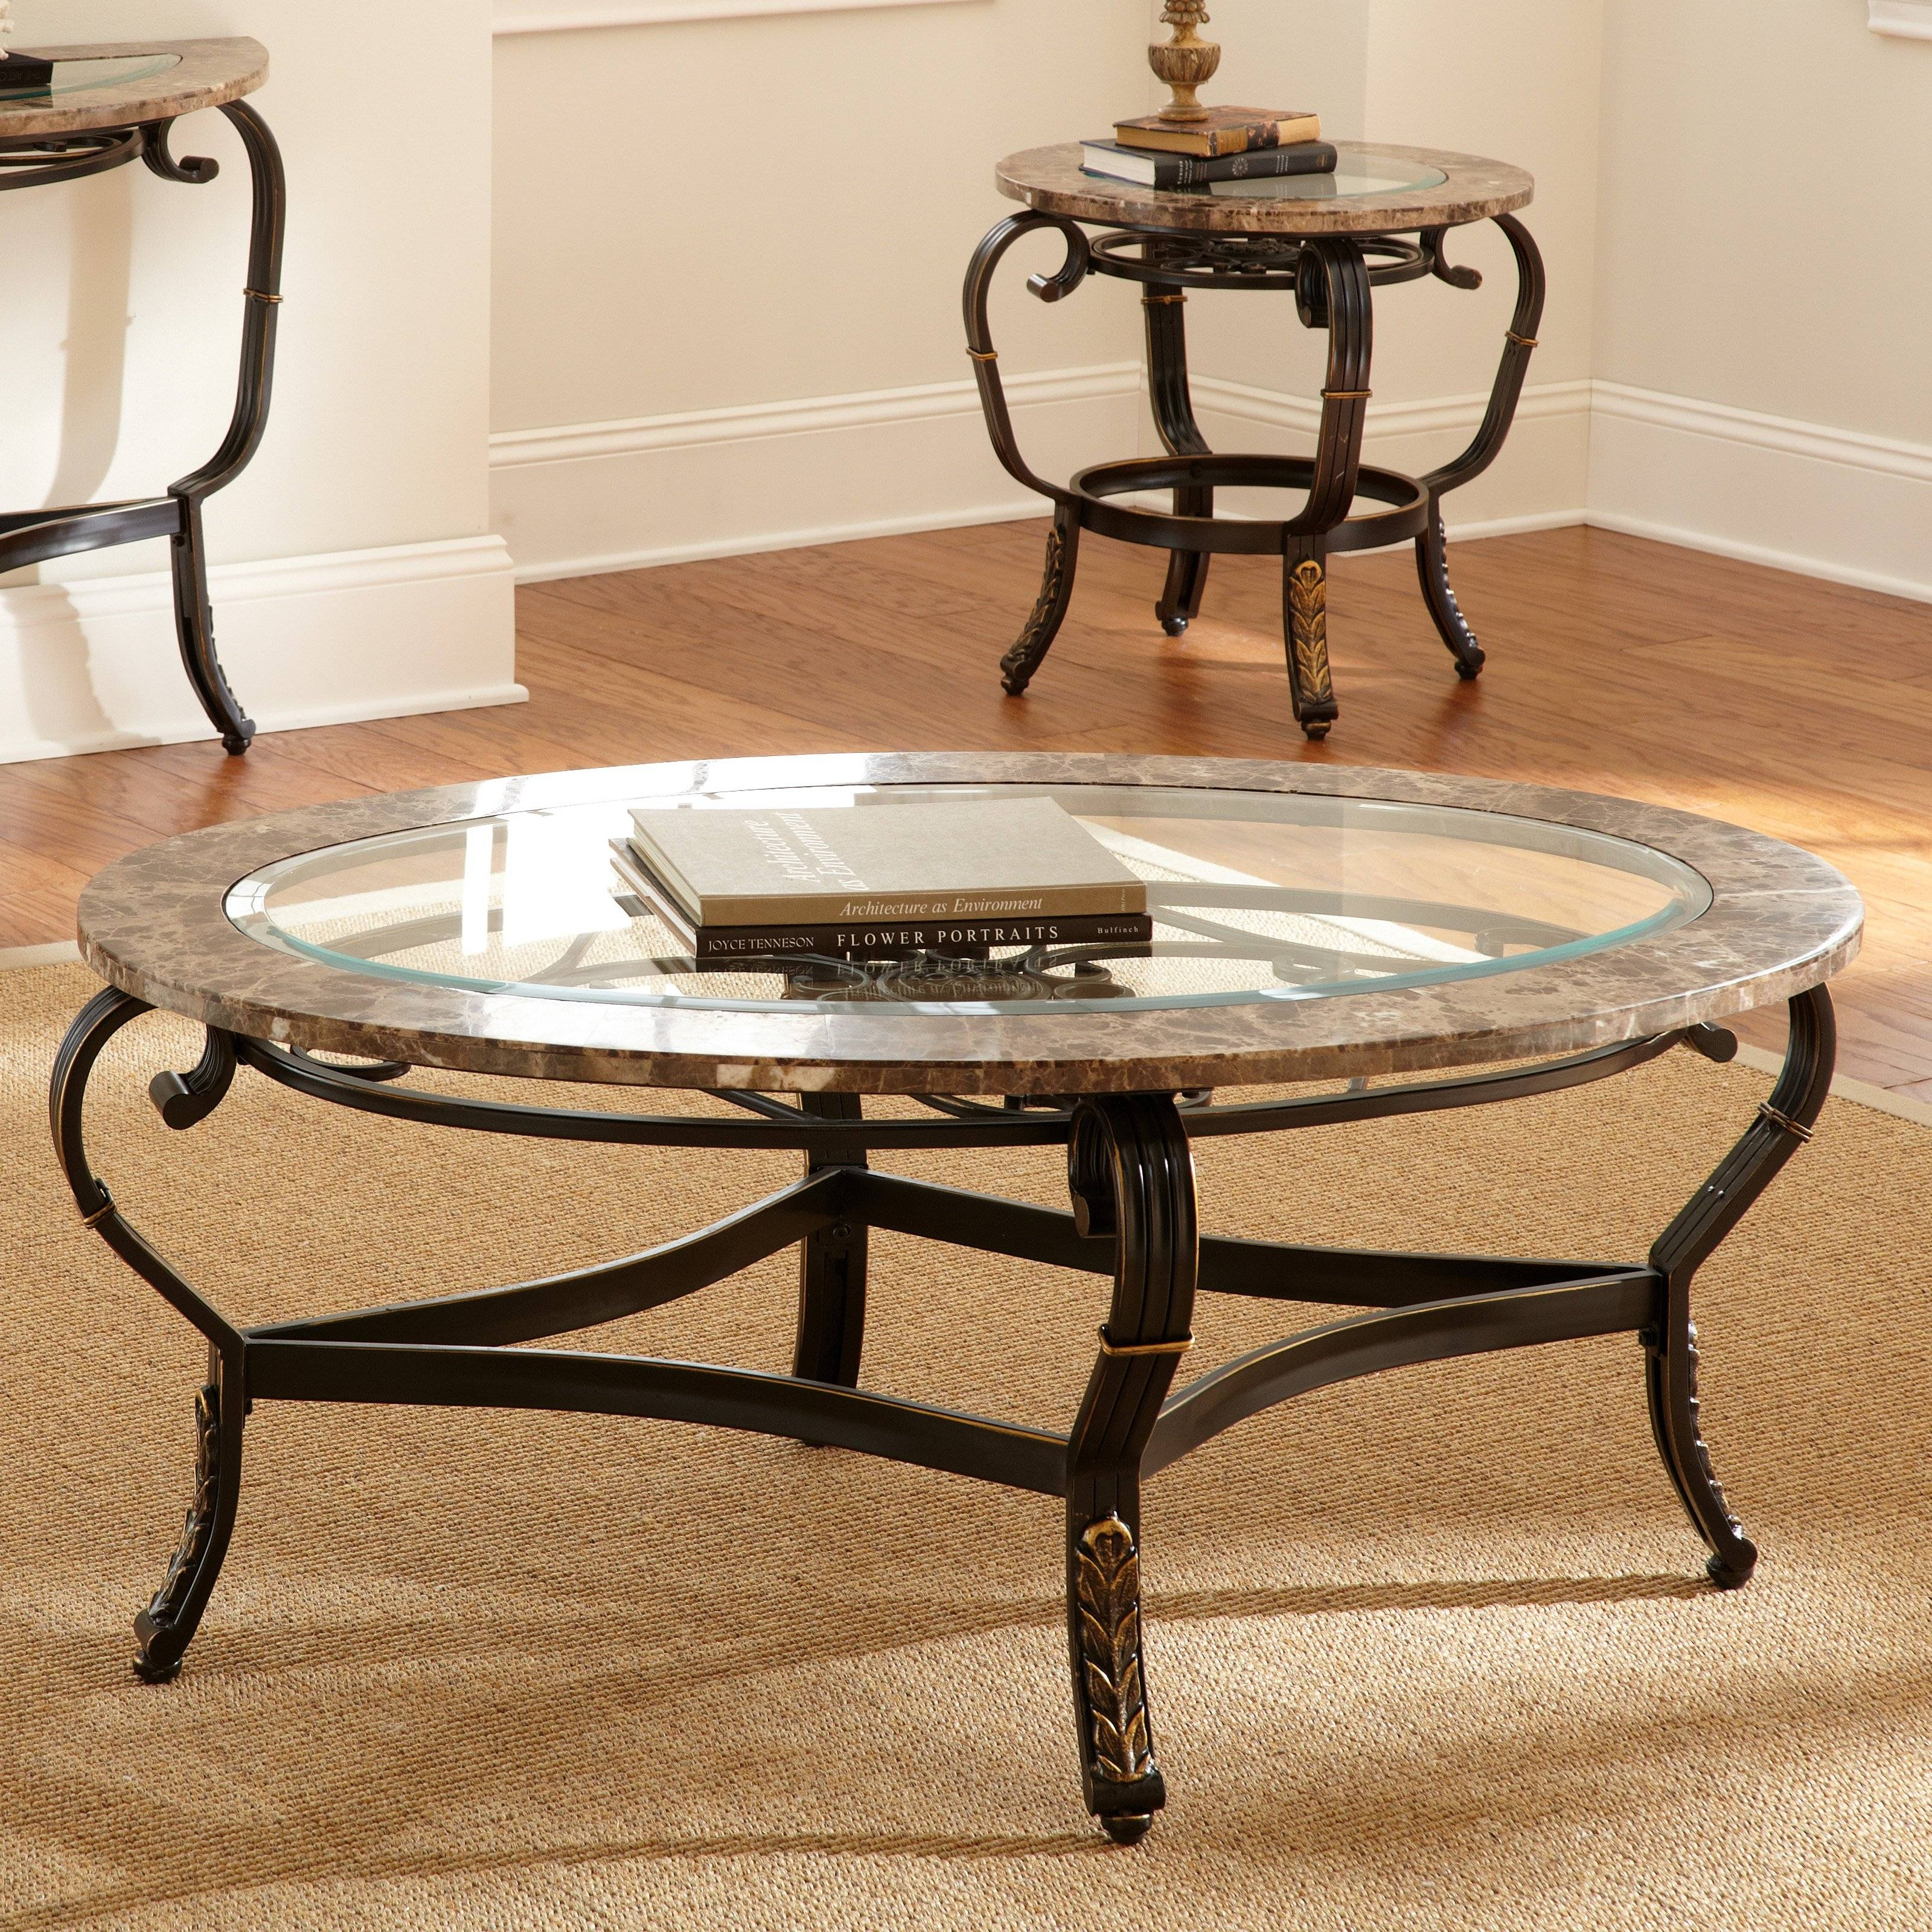 Great Marble Base Glass Top Coffee Table 23 For Home Design Ideas In Marble Base Glass Top Coffee Table (View 5 of 15)